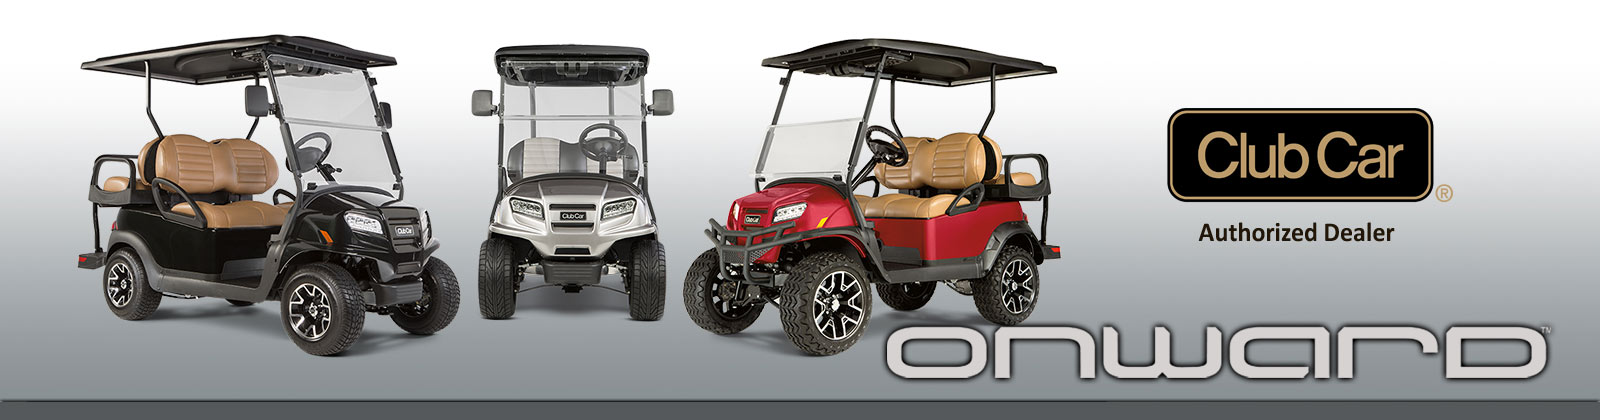 A large inventory of golf cars available for leasing at Brad's Golf Cars